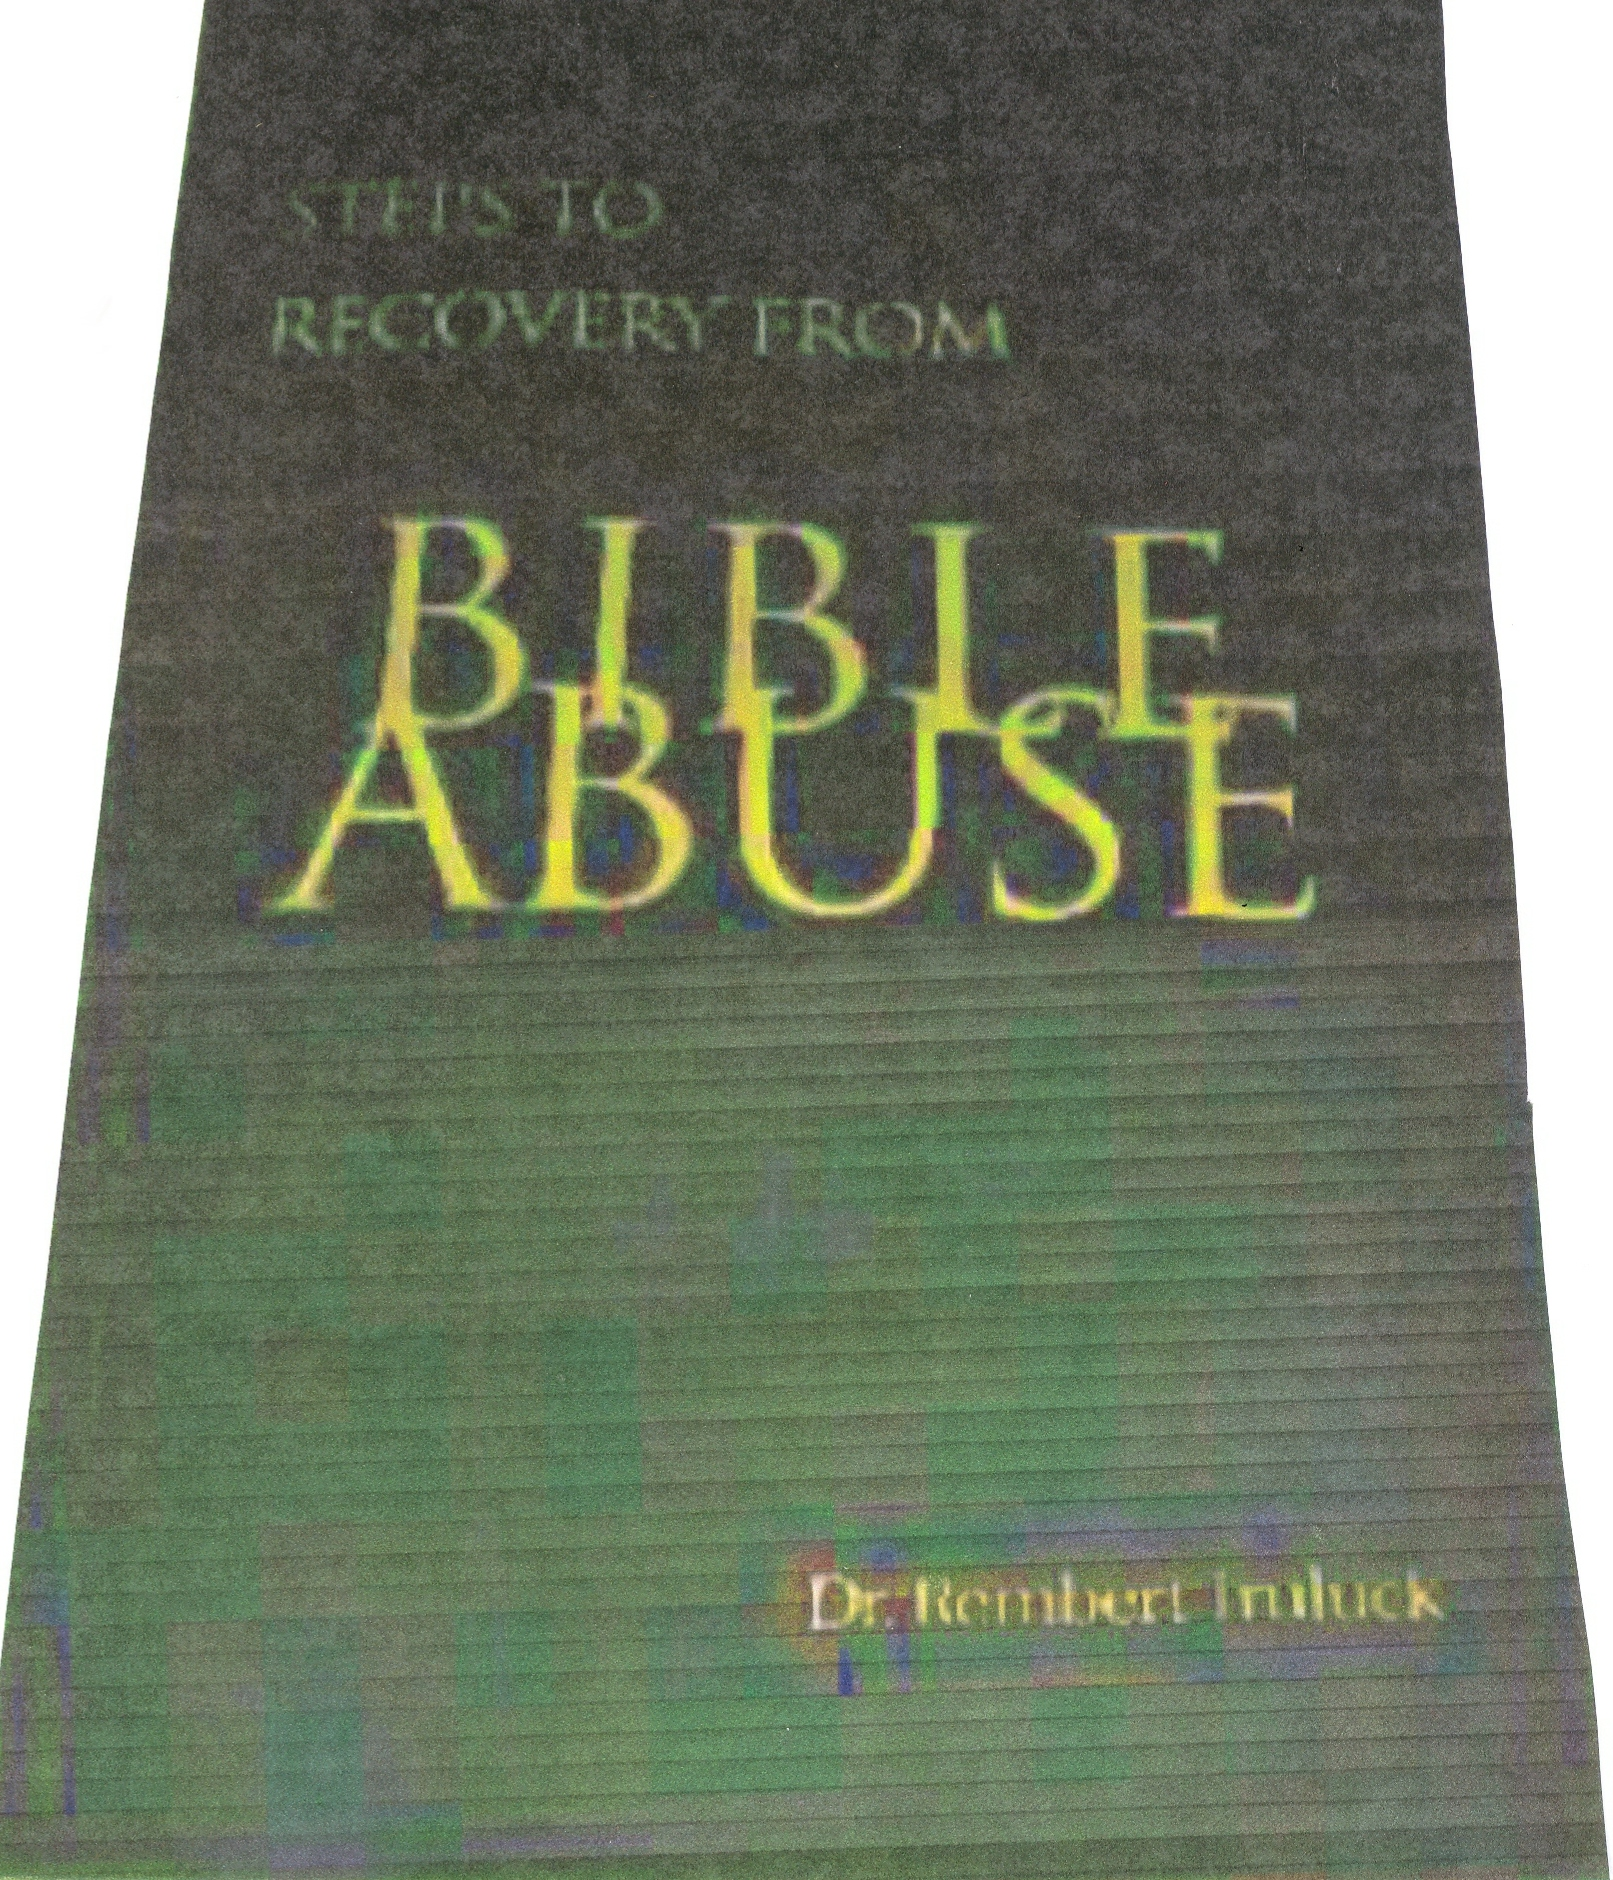 Steps to Recovery from Bible Abuse1 She Hulk Desktop Popular